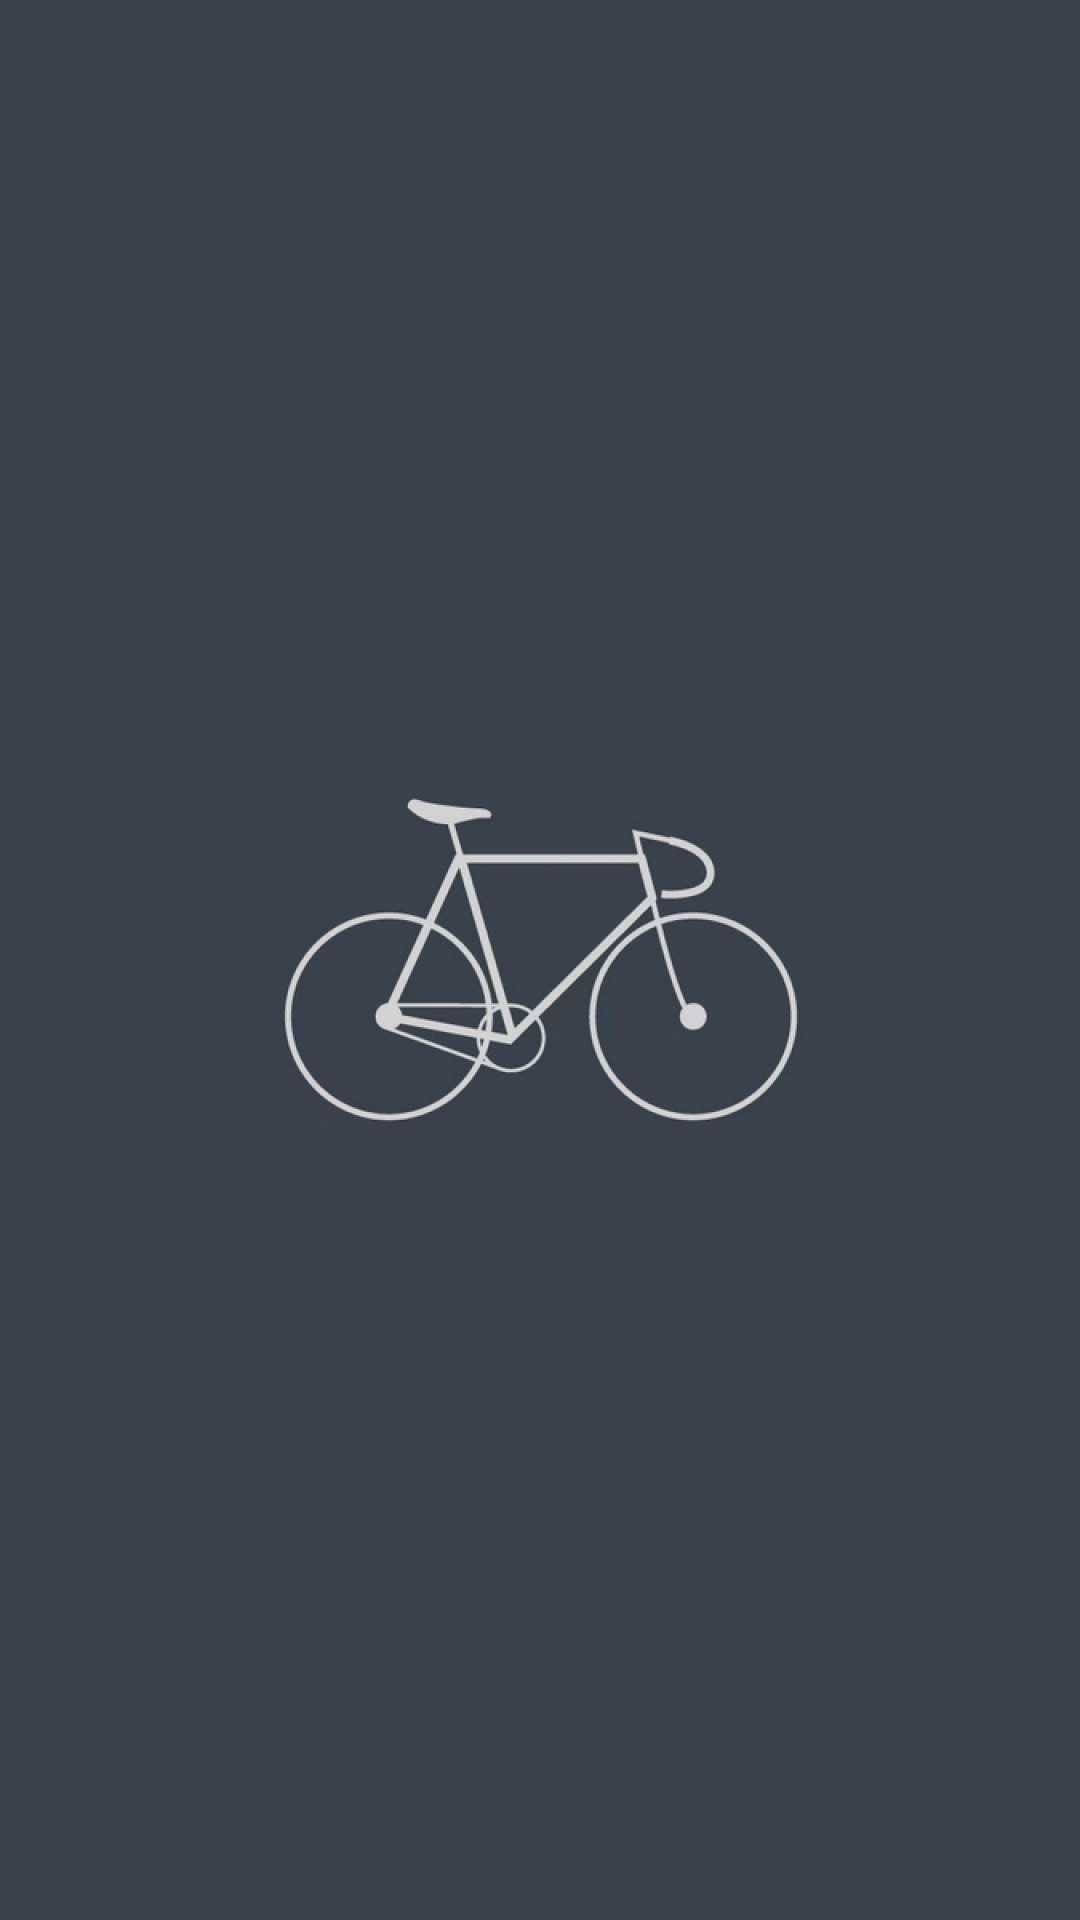 1080x1920 Preview Wallpaper Bicycle, Minimalism, Gray